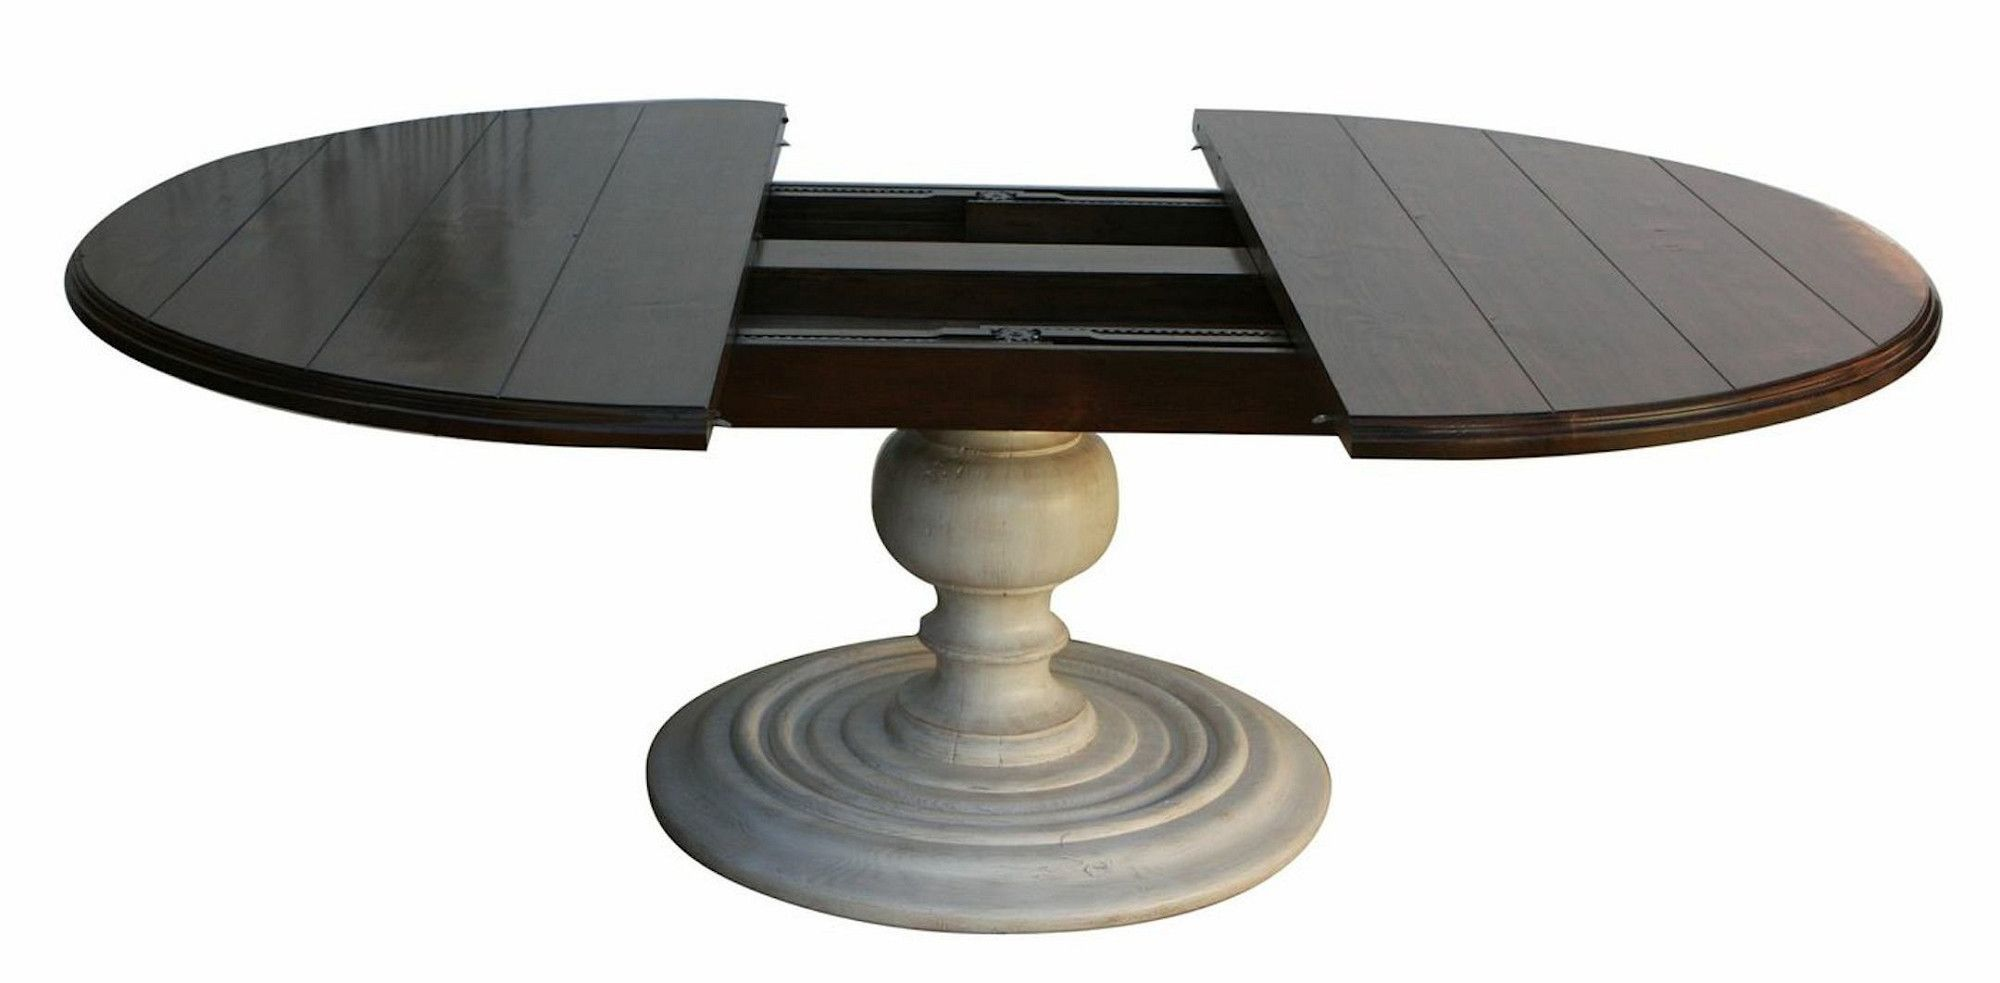 Salvaged Wood Plank Round Dining Table Round Dining Room Round Pedestal Dining Round Dining Room Table Round dining table with extensions